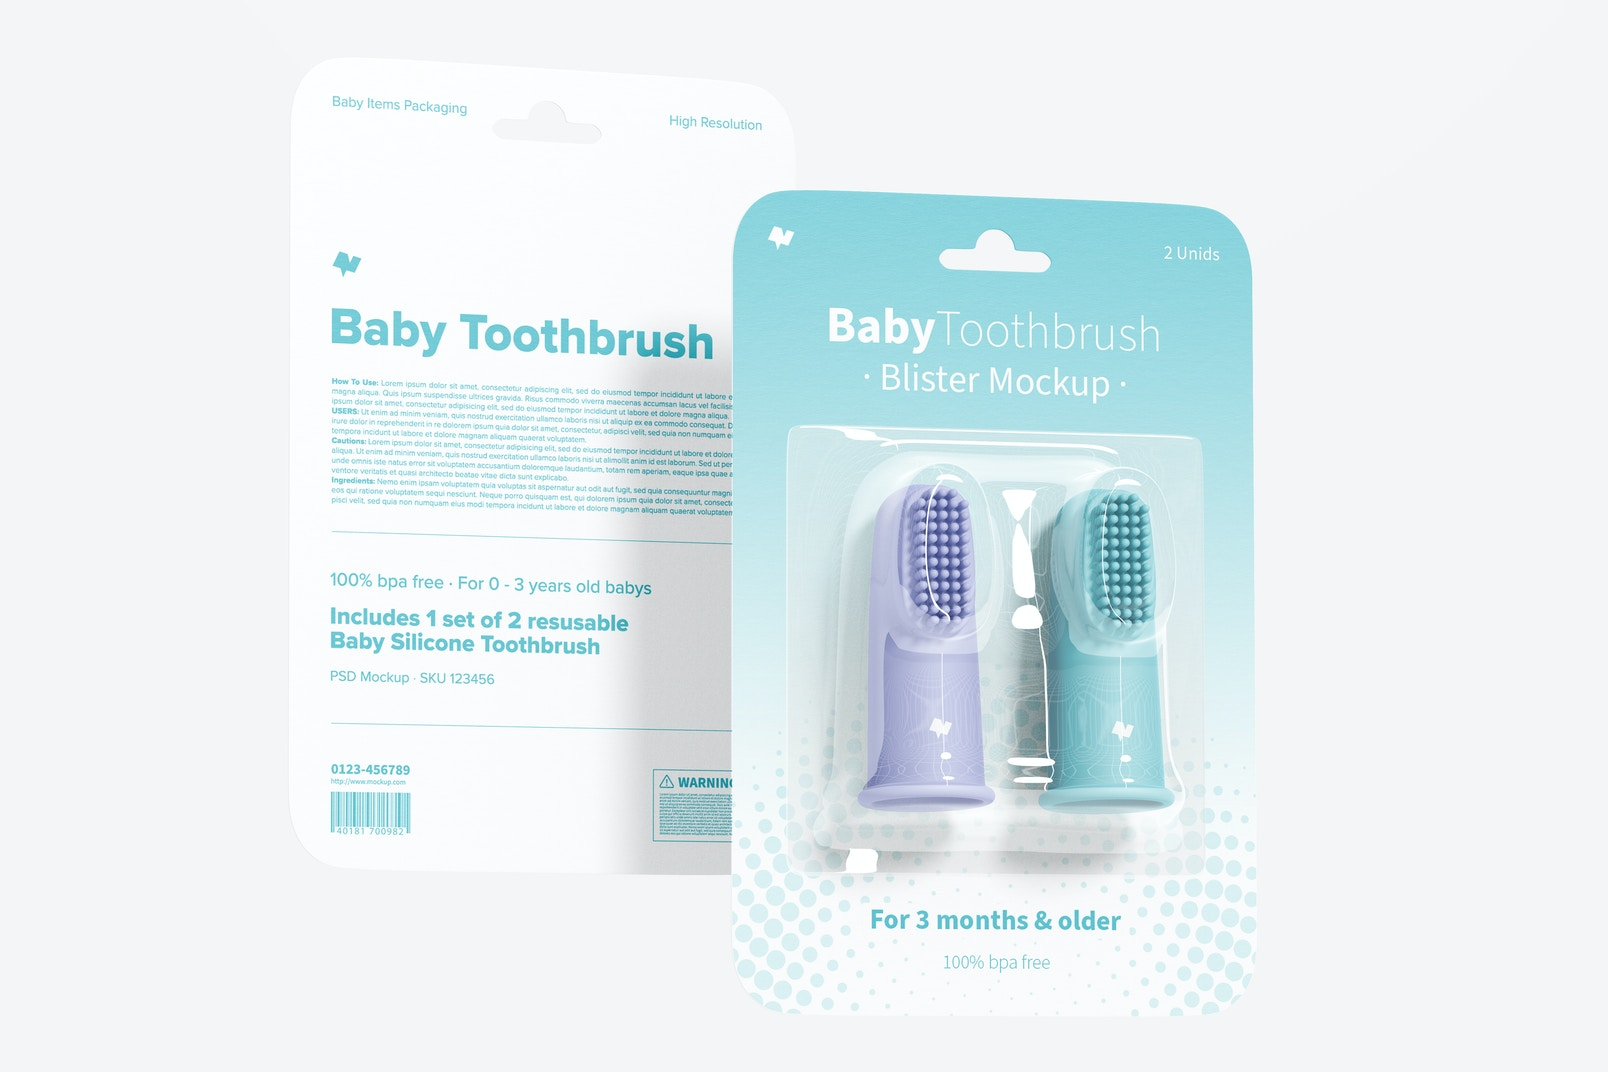 Baby Toothbrush Blister Mockup, Front and Back View